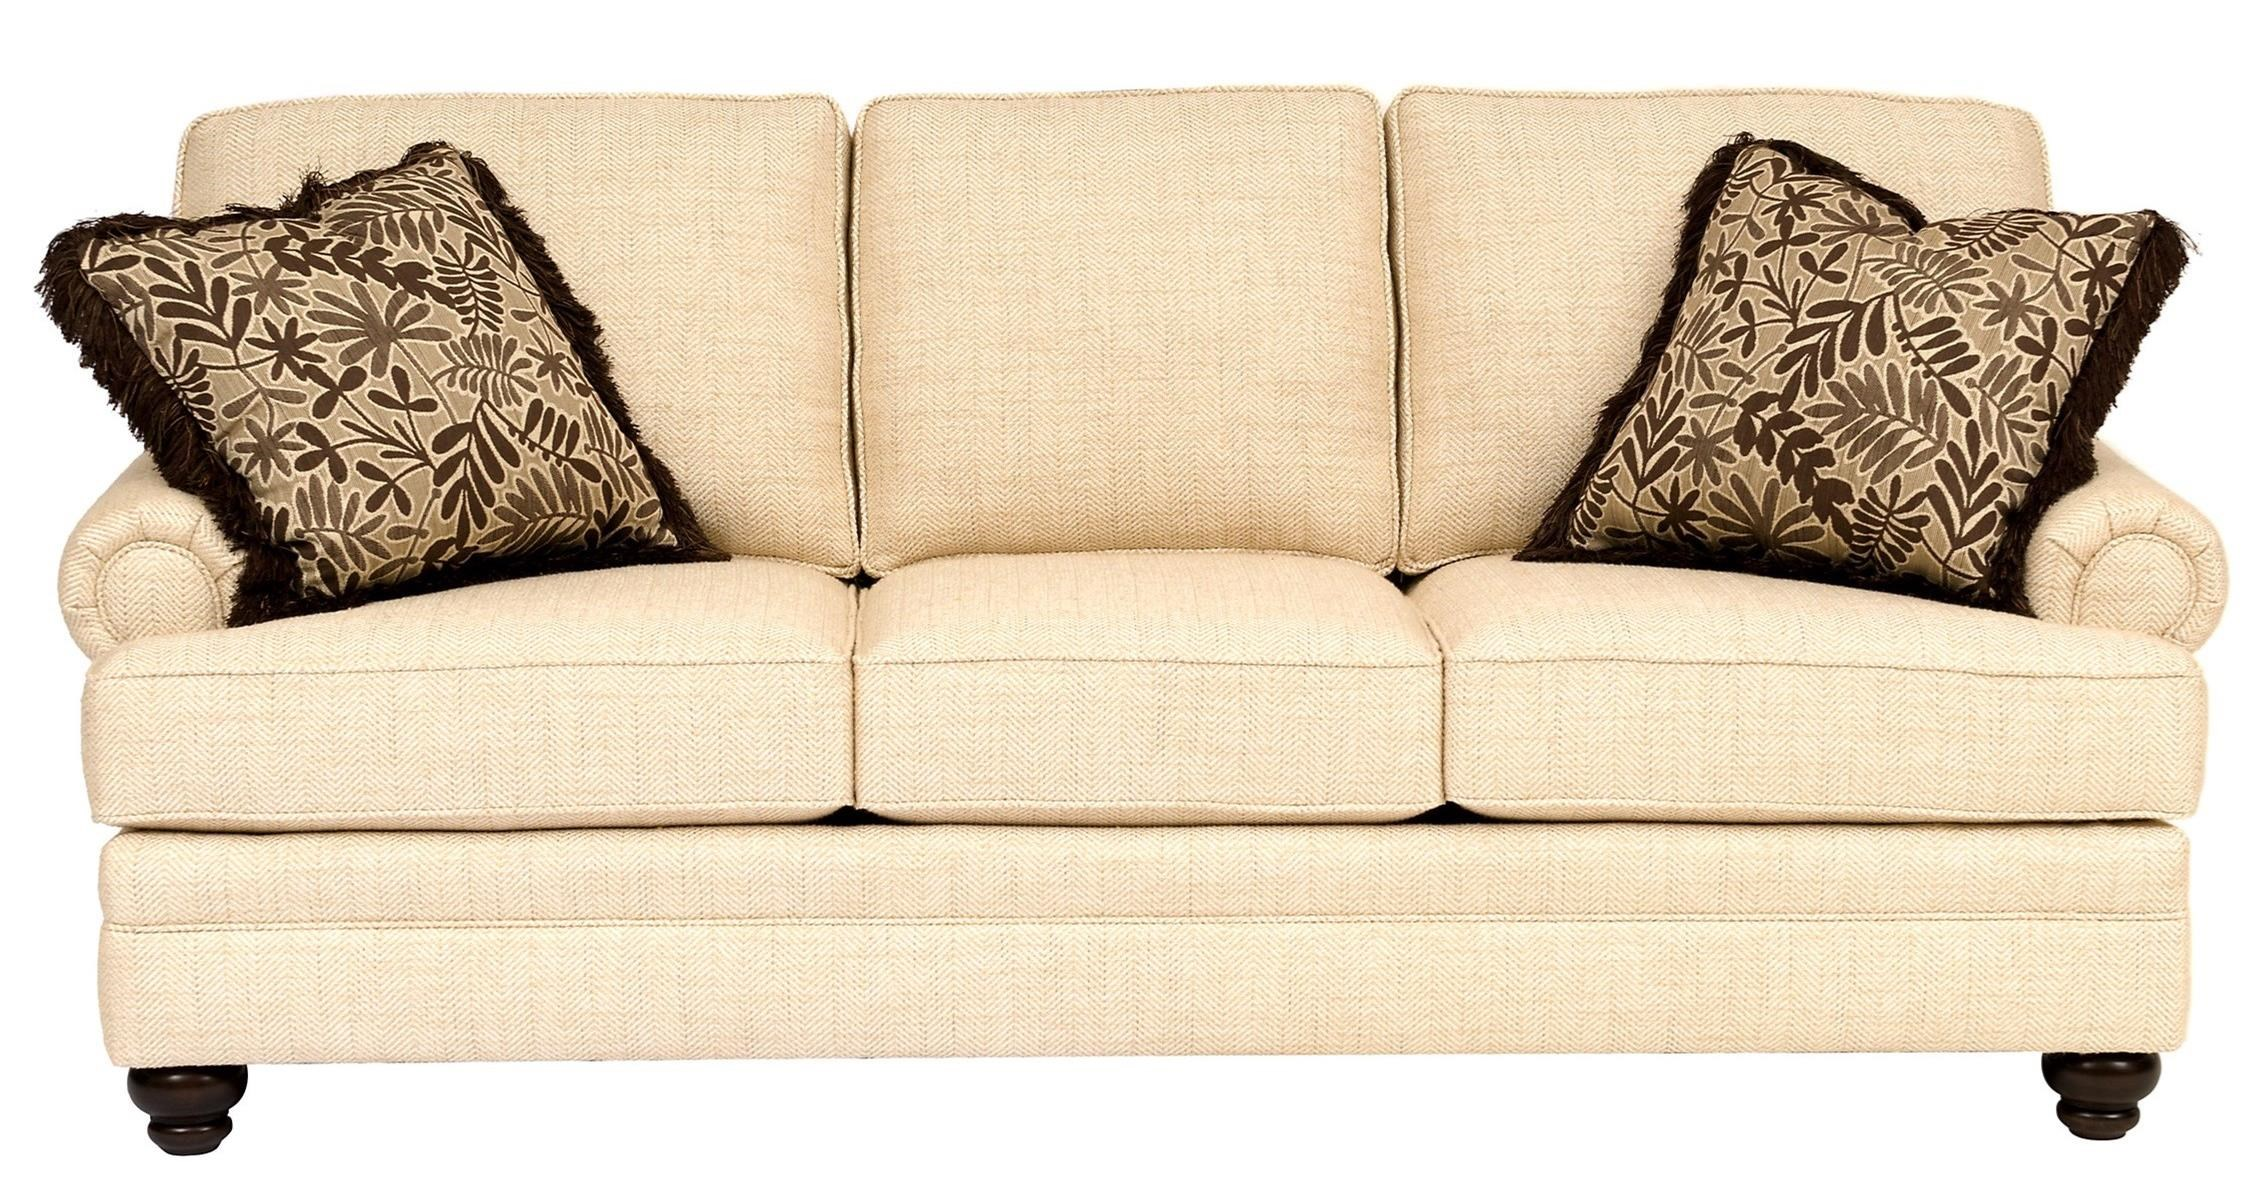 5221 Sofa by Smith Brothers at Turk Furniture